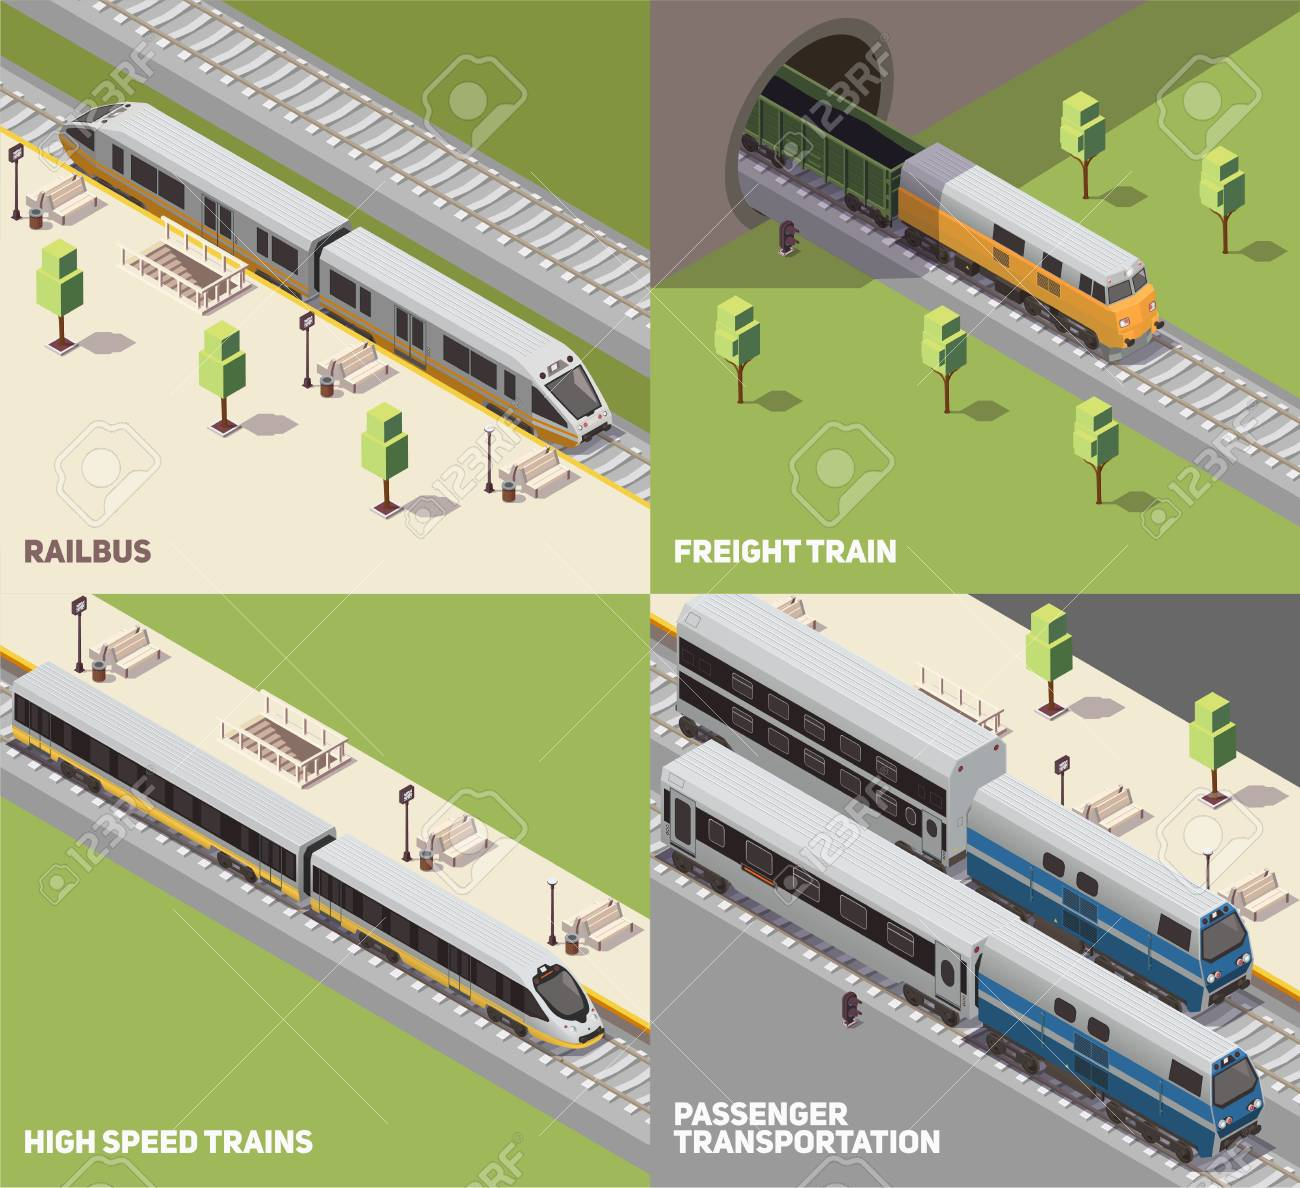 Railbus freight cargo and high speed trains passenger transportation concept 4 isometric icons set isometric vector illustration - 115370202